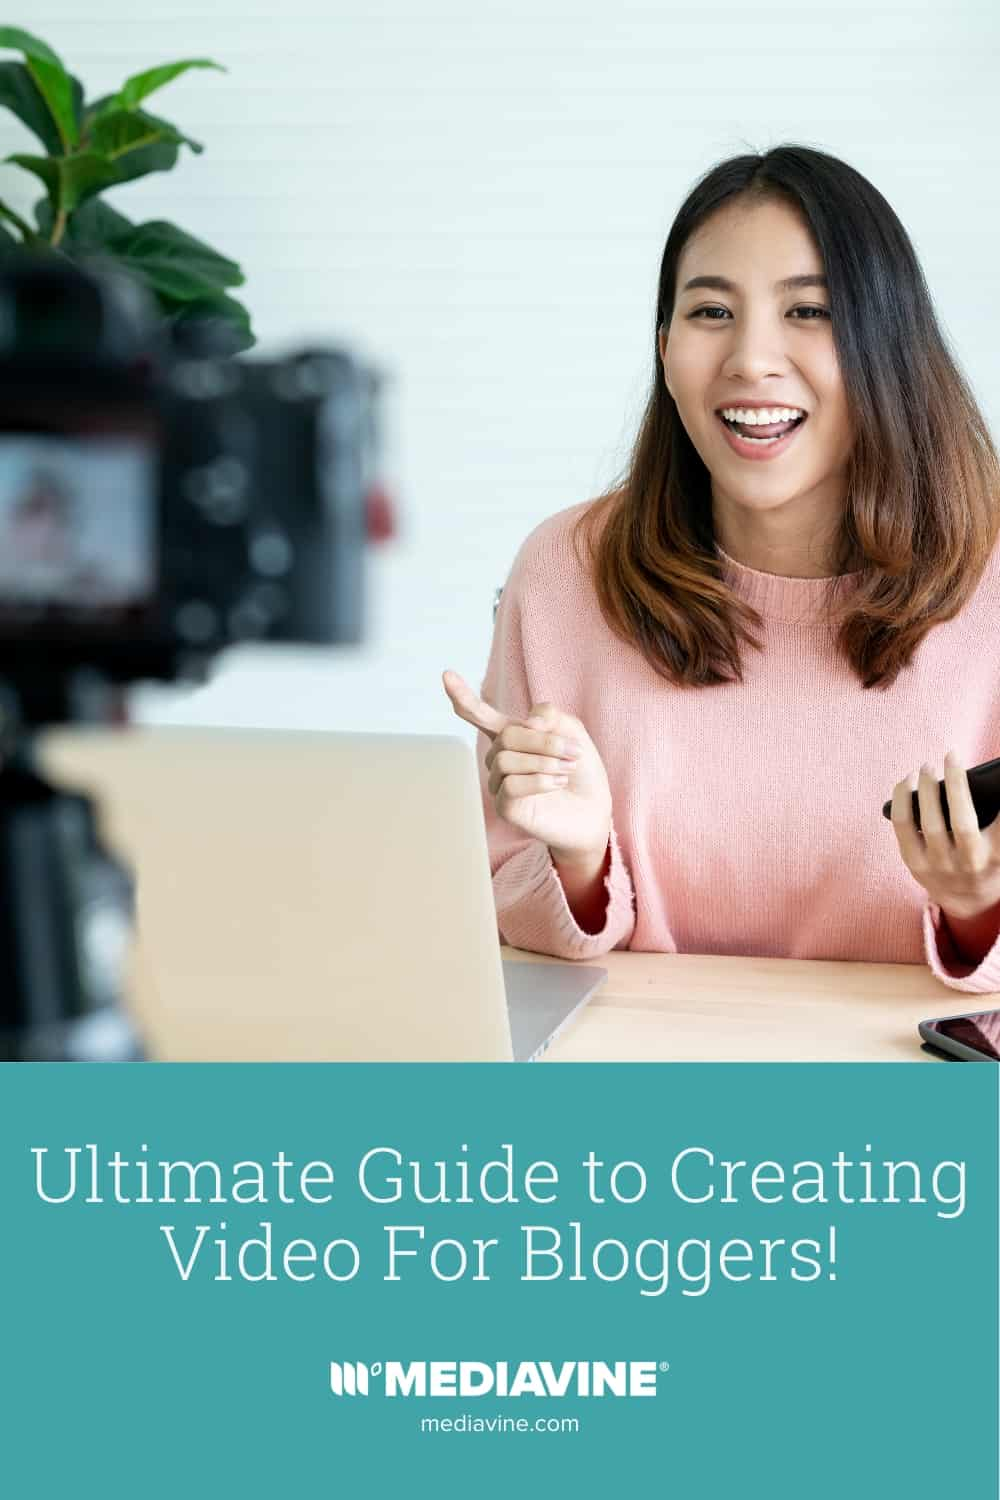 Mediavine Pinterest image - Ultimate Guide to Creating Video For Bloggers!